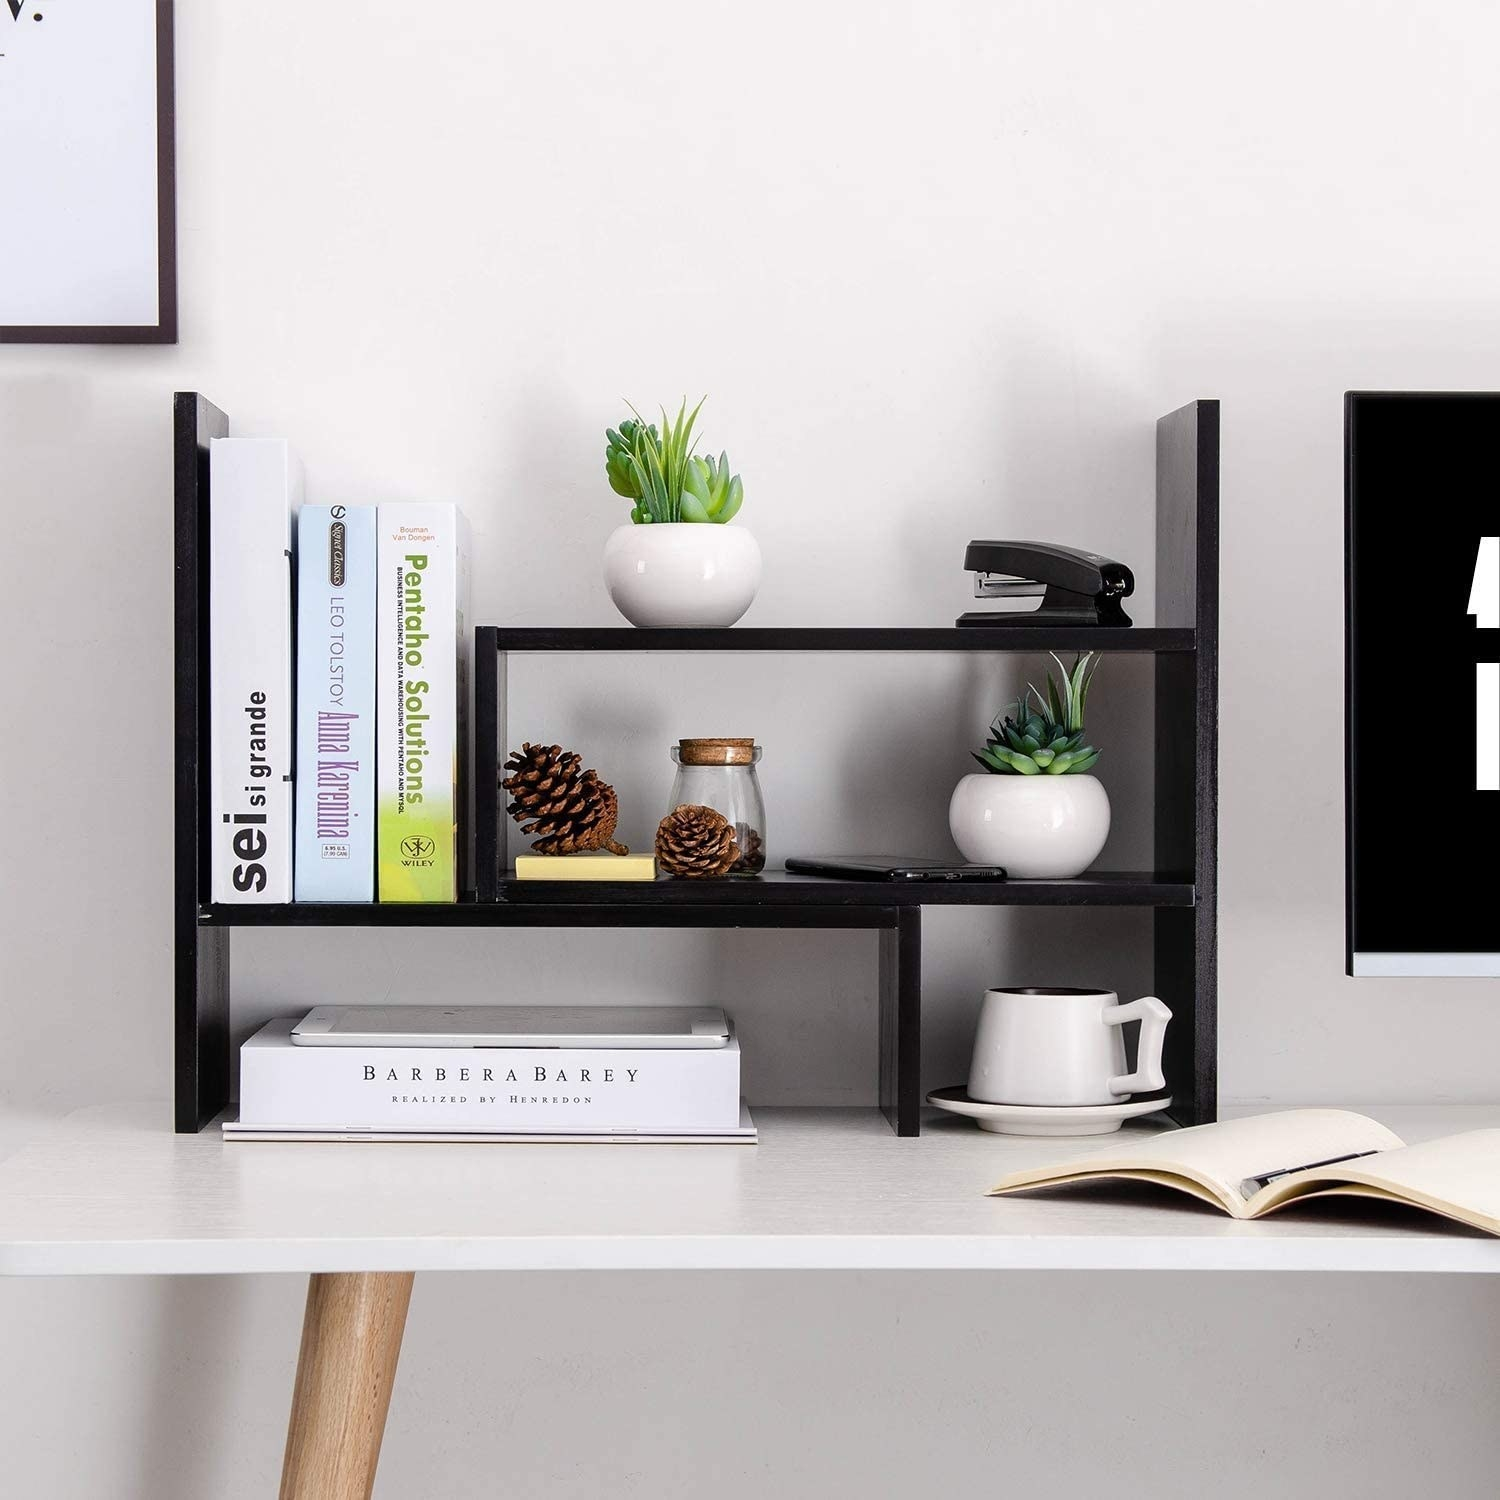 A wooden desk organizer with different shelves that have books and plant pots on them